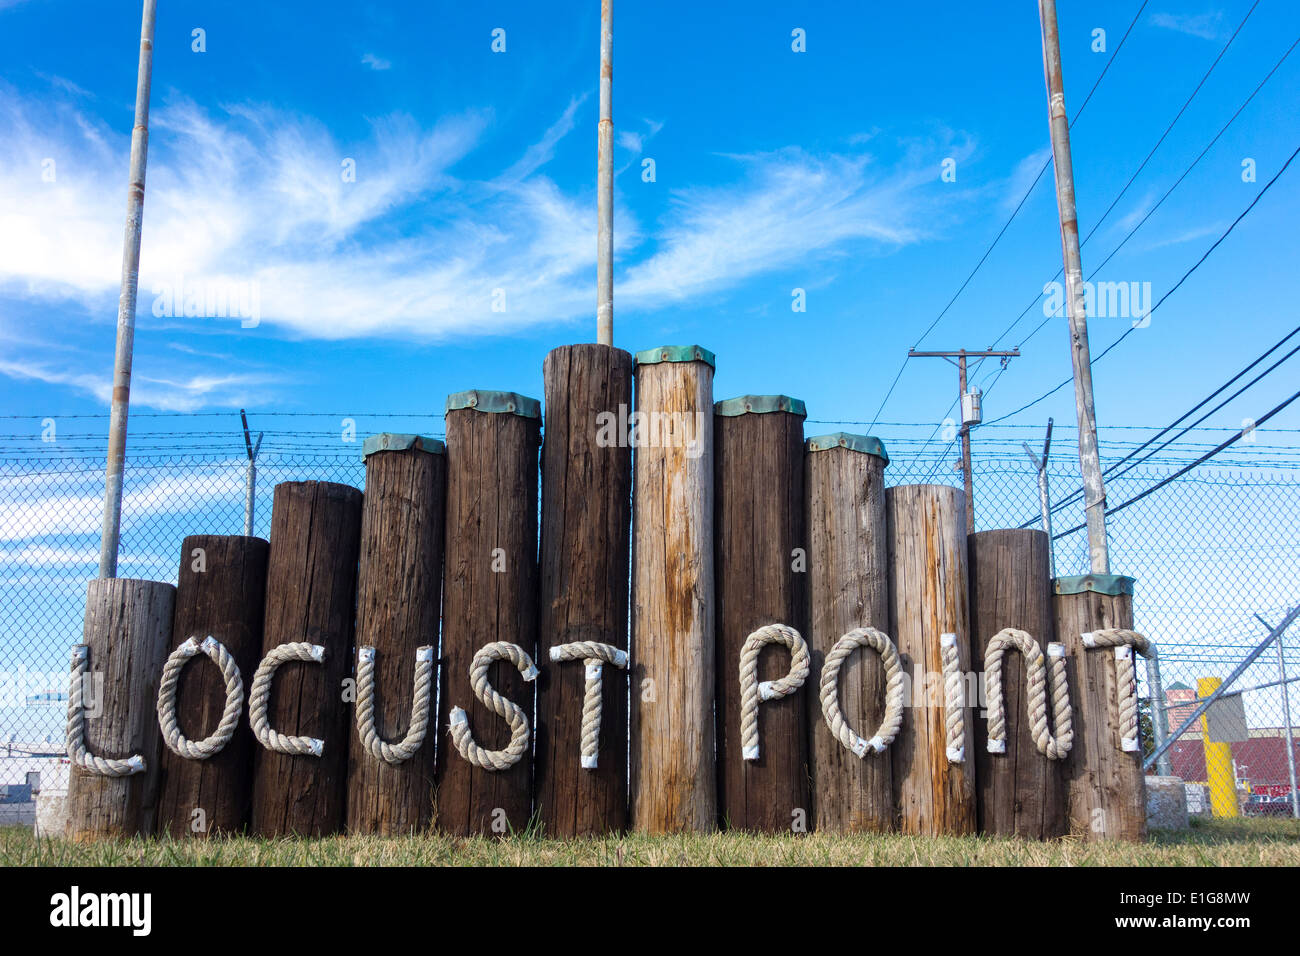 Baltimore Locust Point Sign at Fort Ft McHenry - Stock Image